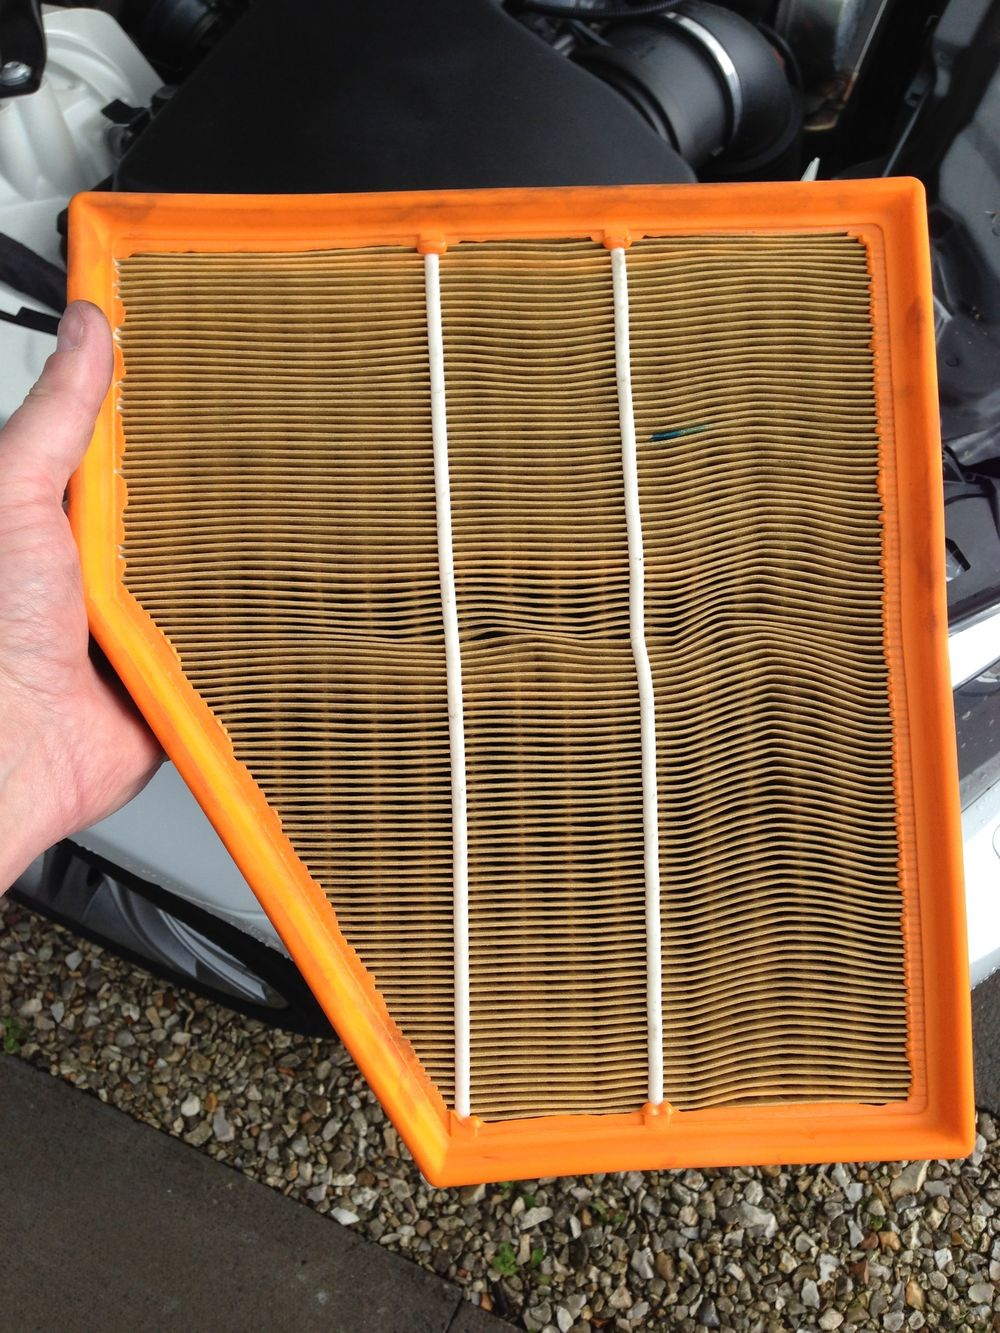 Engine air filter looks a bit dirty but is actually in good condition. Will replace at next oil service.